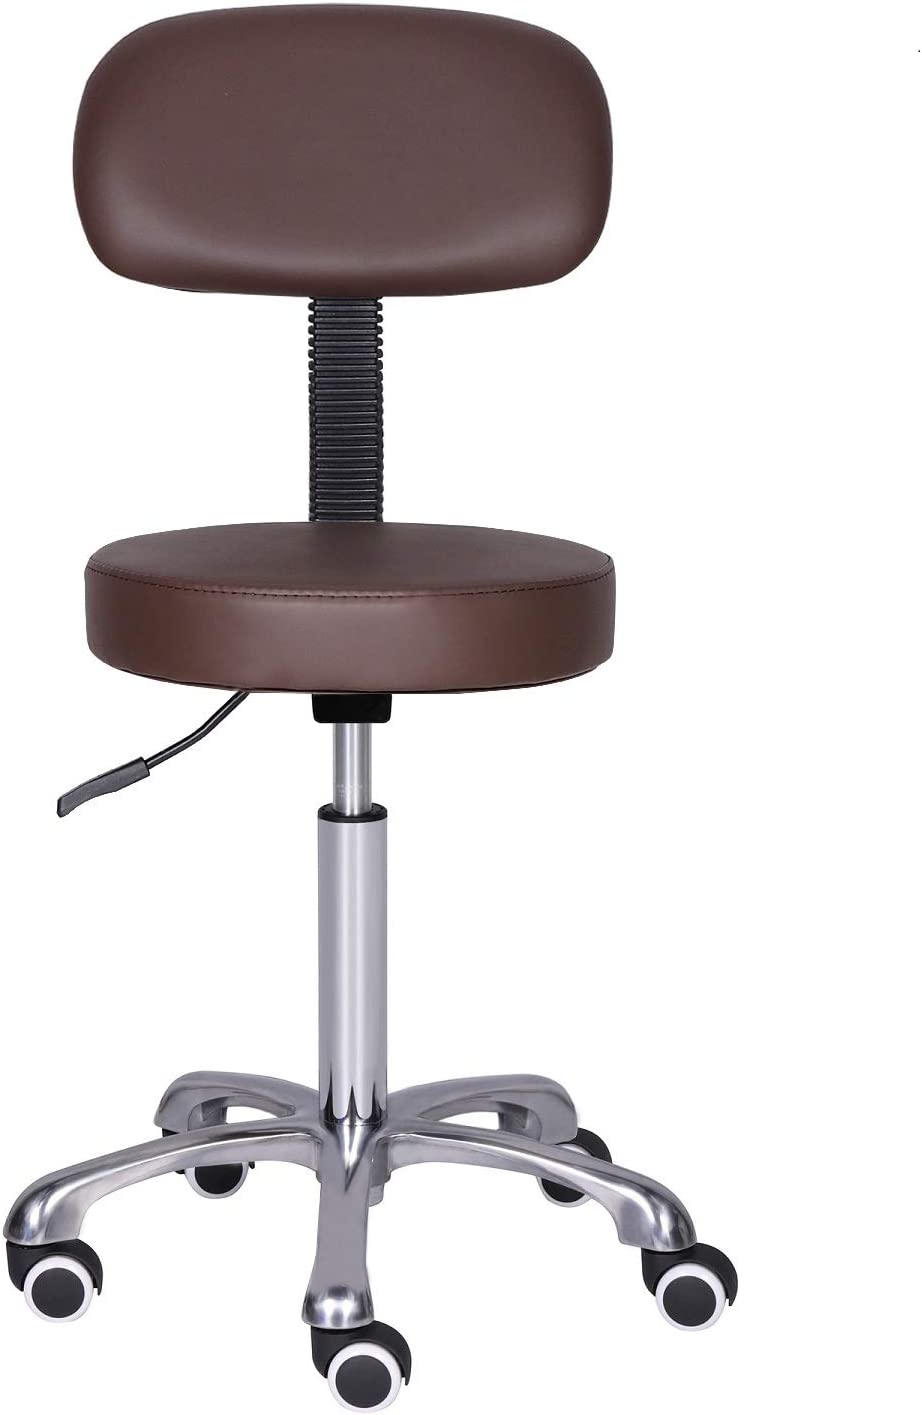 Kaleurrier Rolling Swivel Adjustable Heavy Duty Drafting Stool Chair for Salon,Medical,Office and Home uses,with Wheels and Back (Coffee)